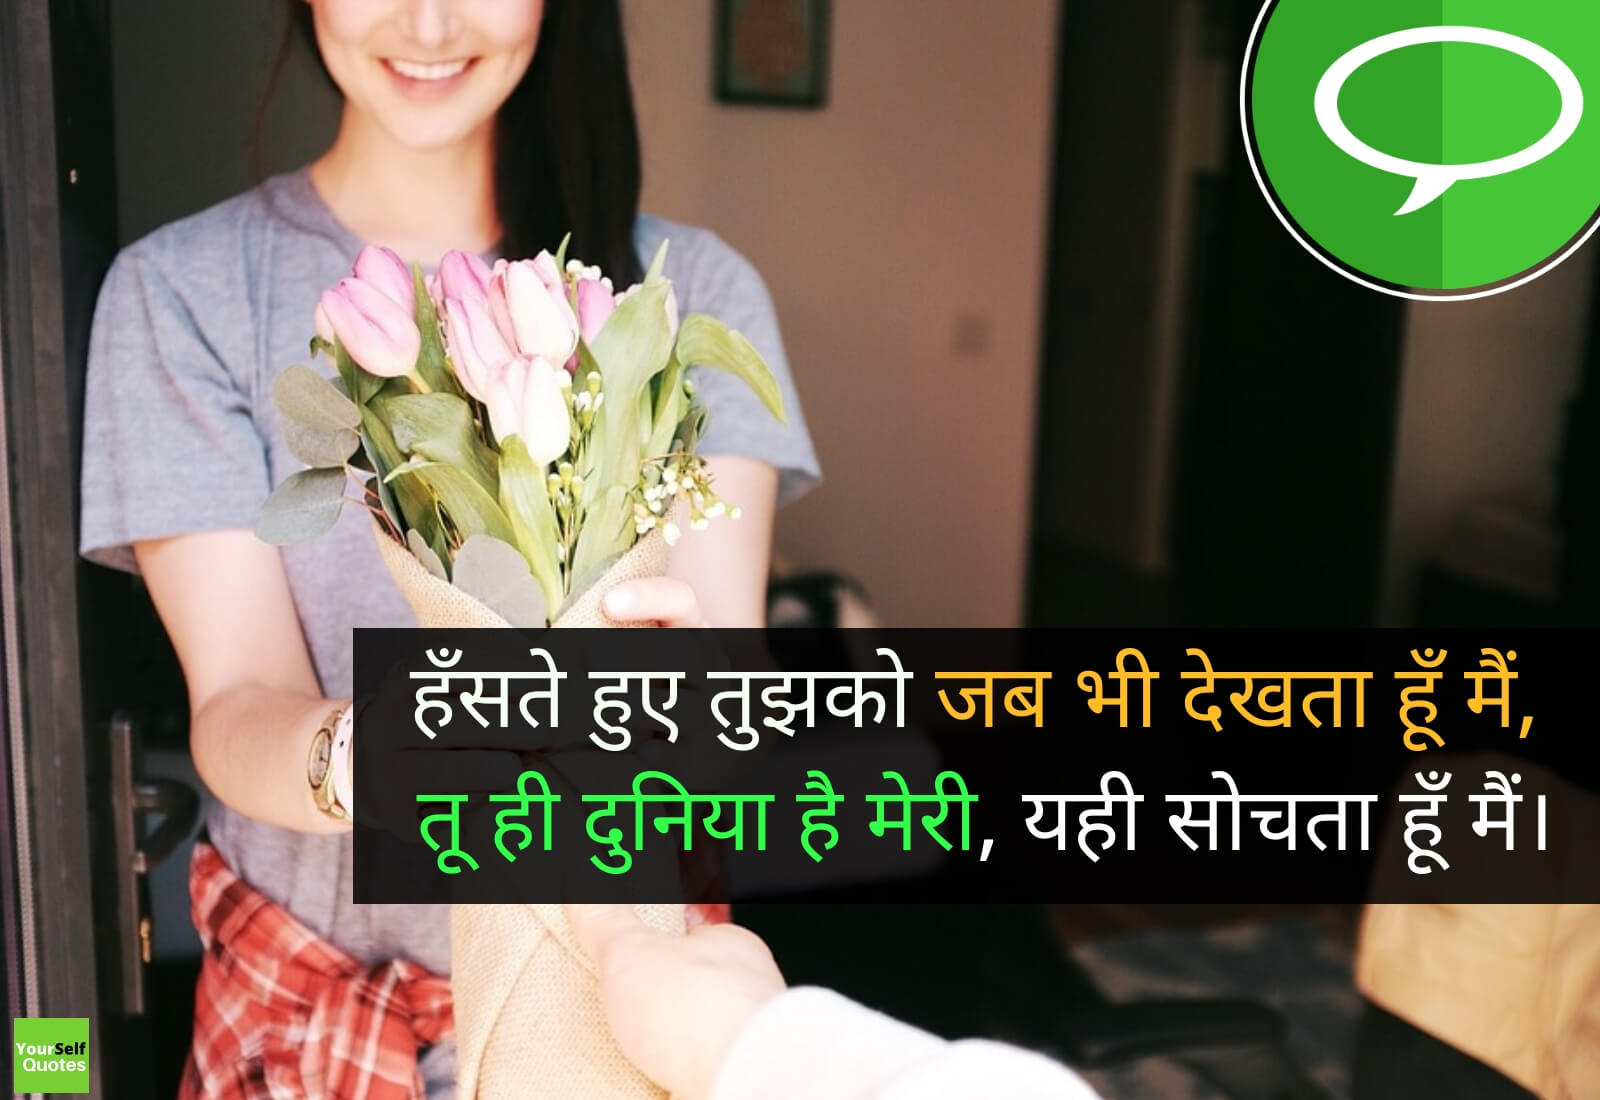 Shayari Hindi Status Images